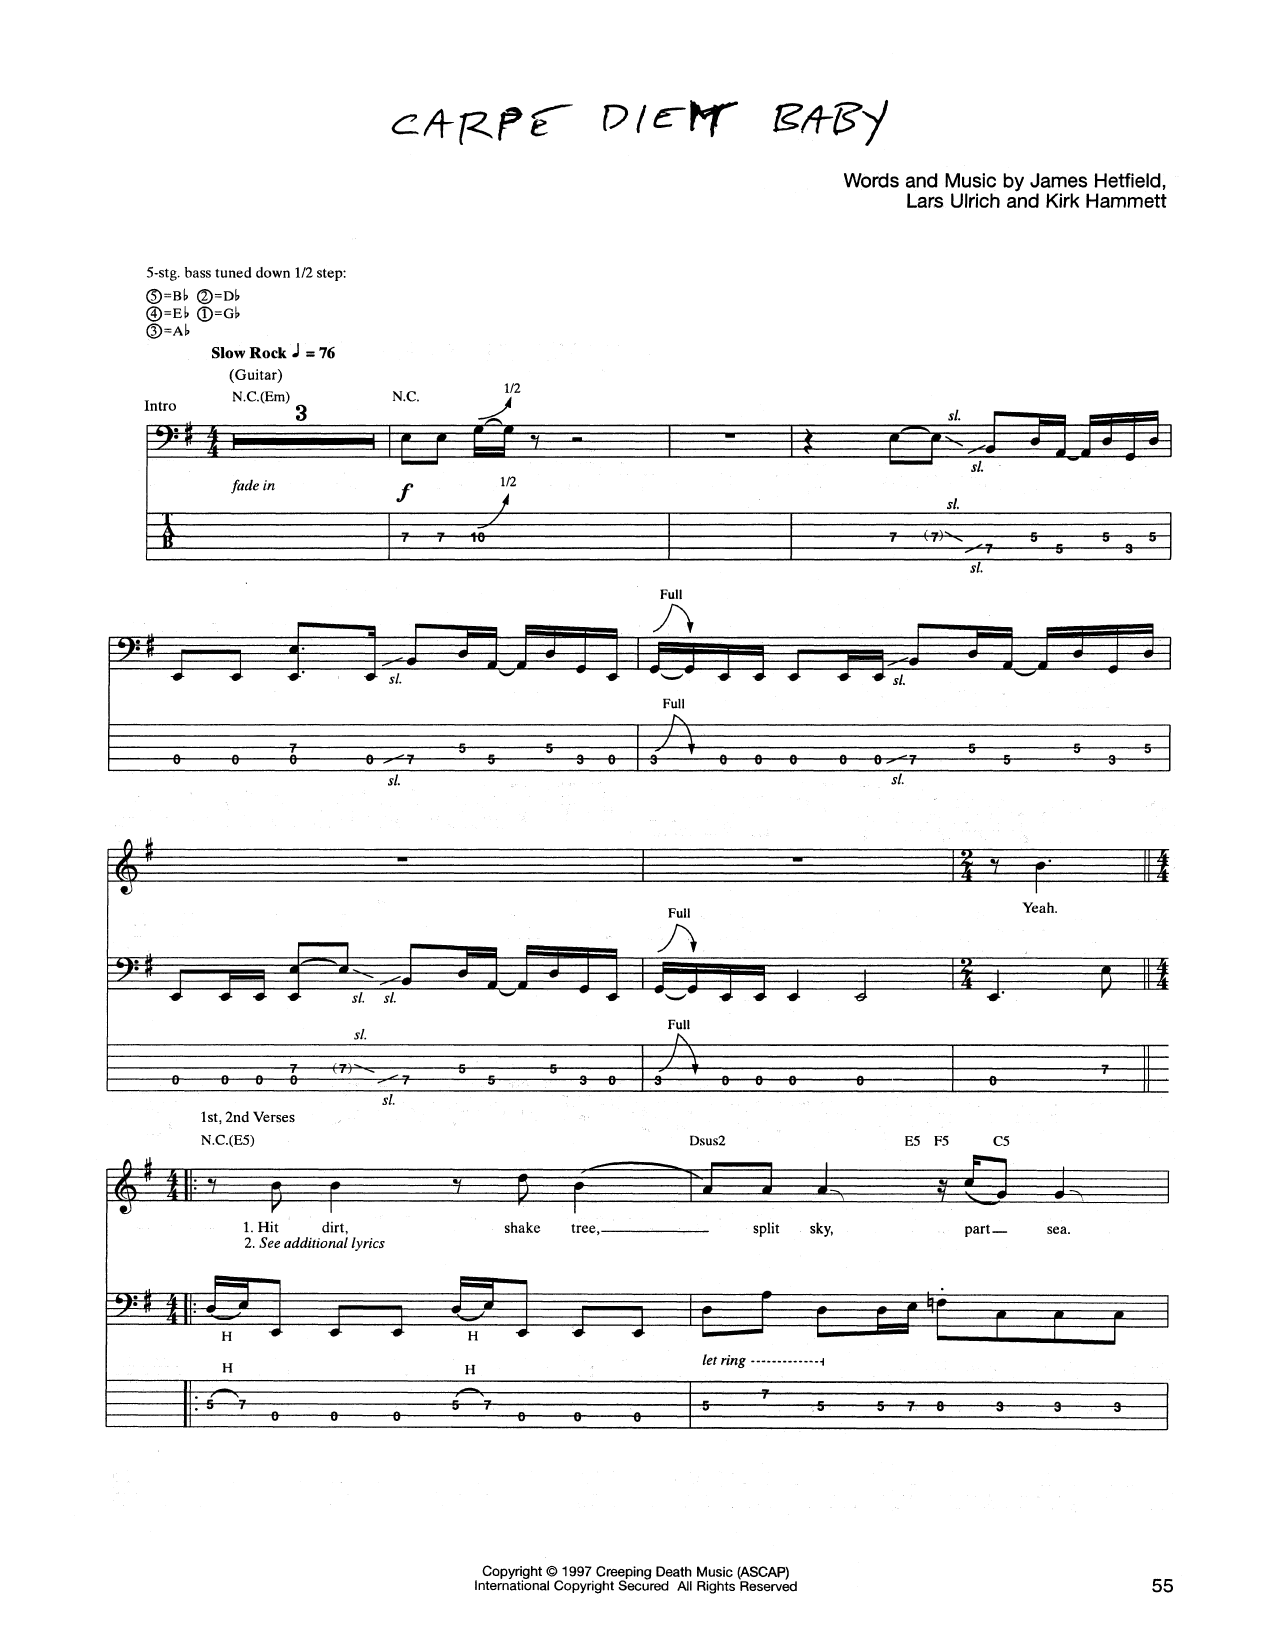 Carpe Diem Baby Sheet Music